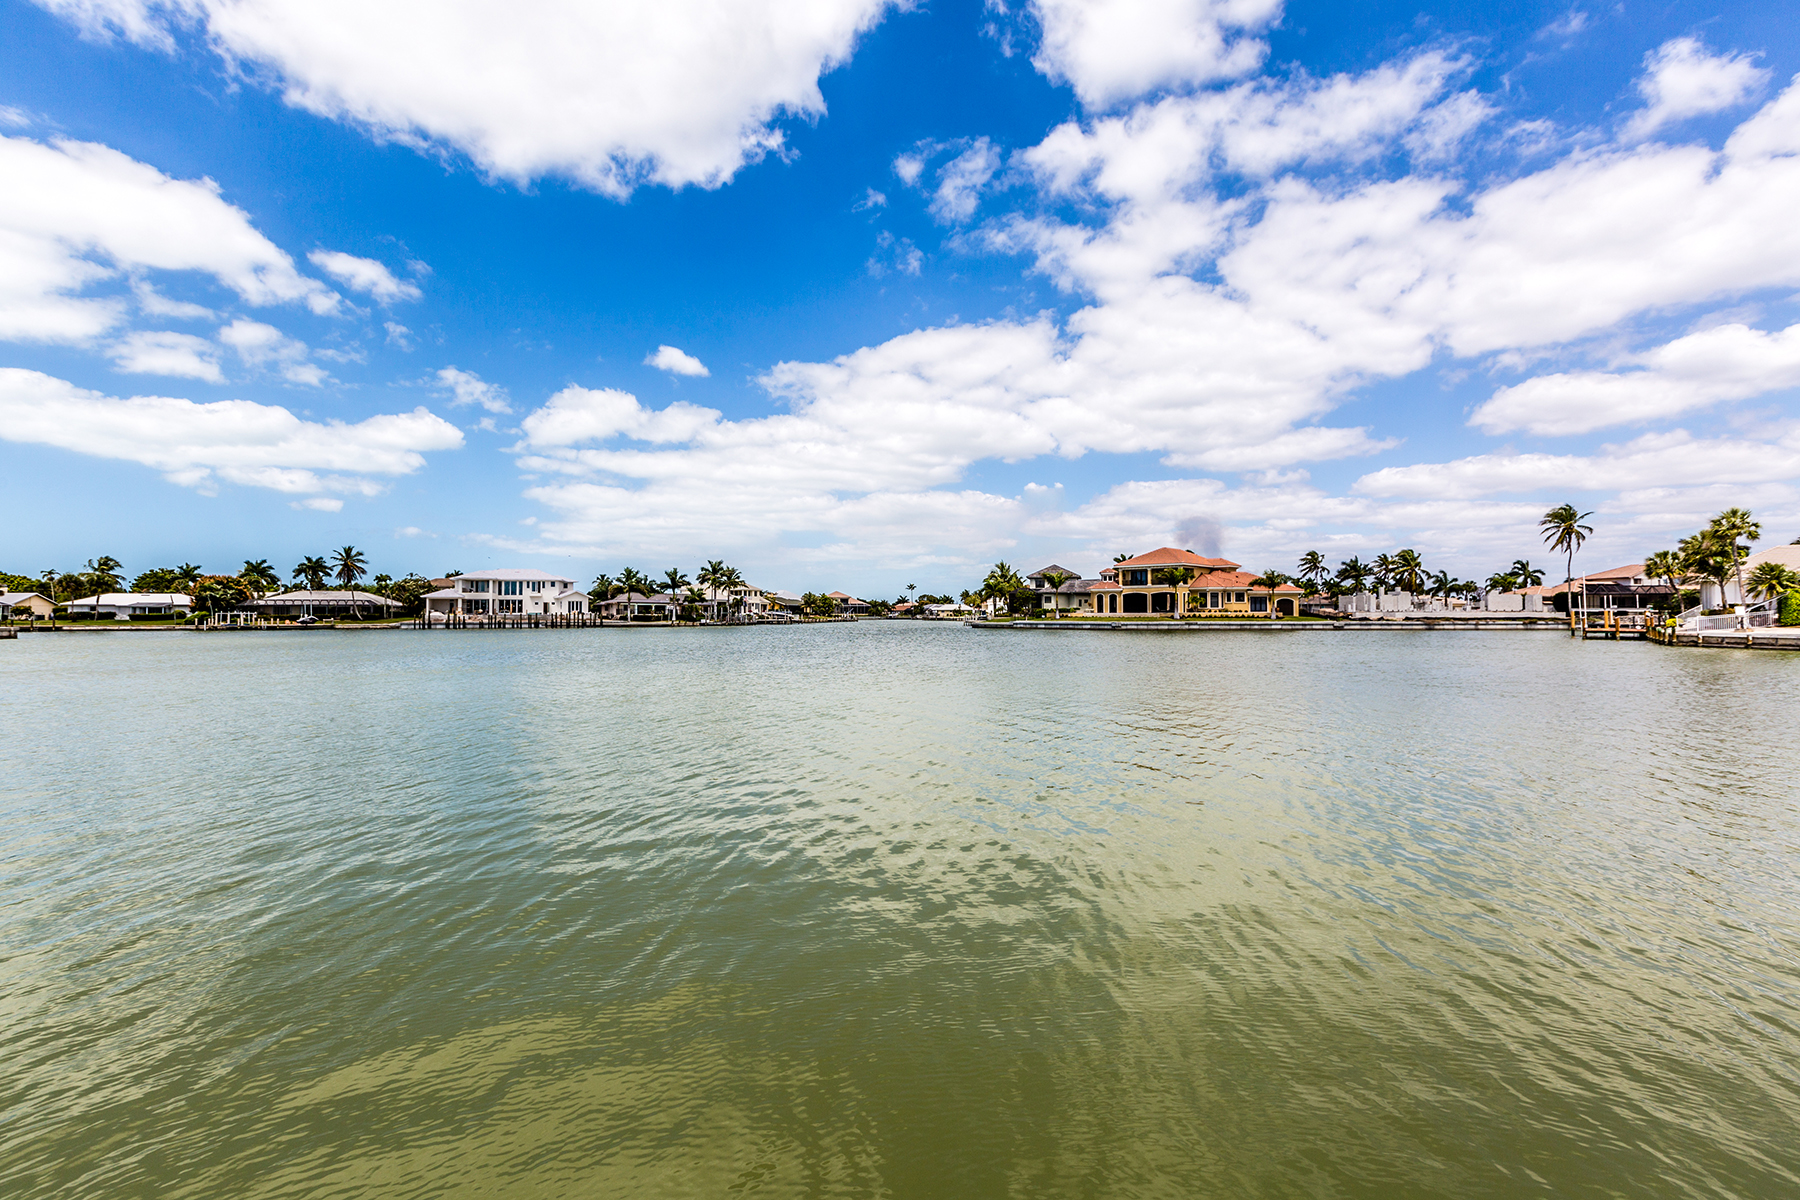 Single Family Home for Sale at MARCO ISLAND 490 Tarpon Ct Marco Island, Florida, 34145 United States